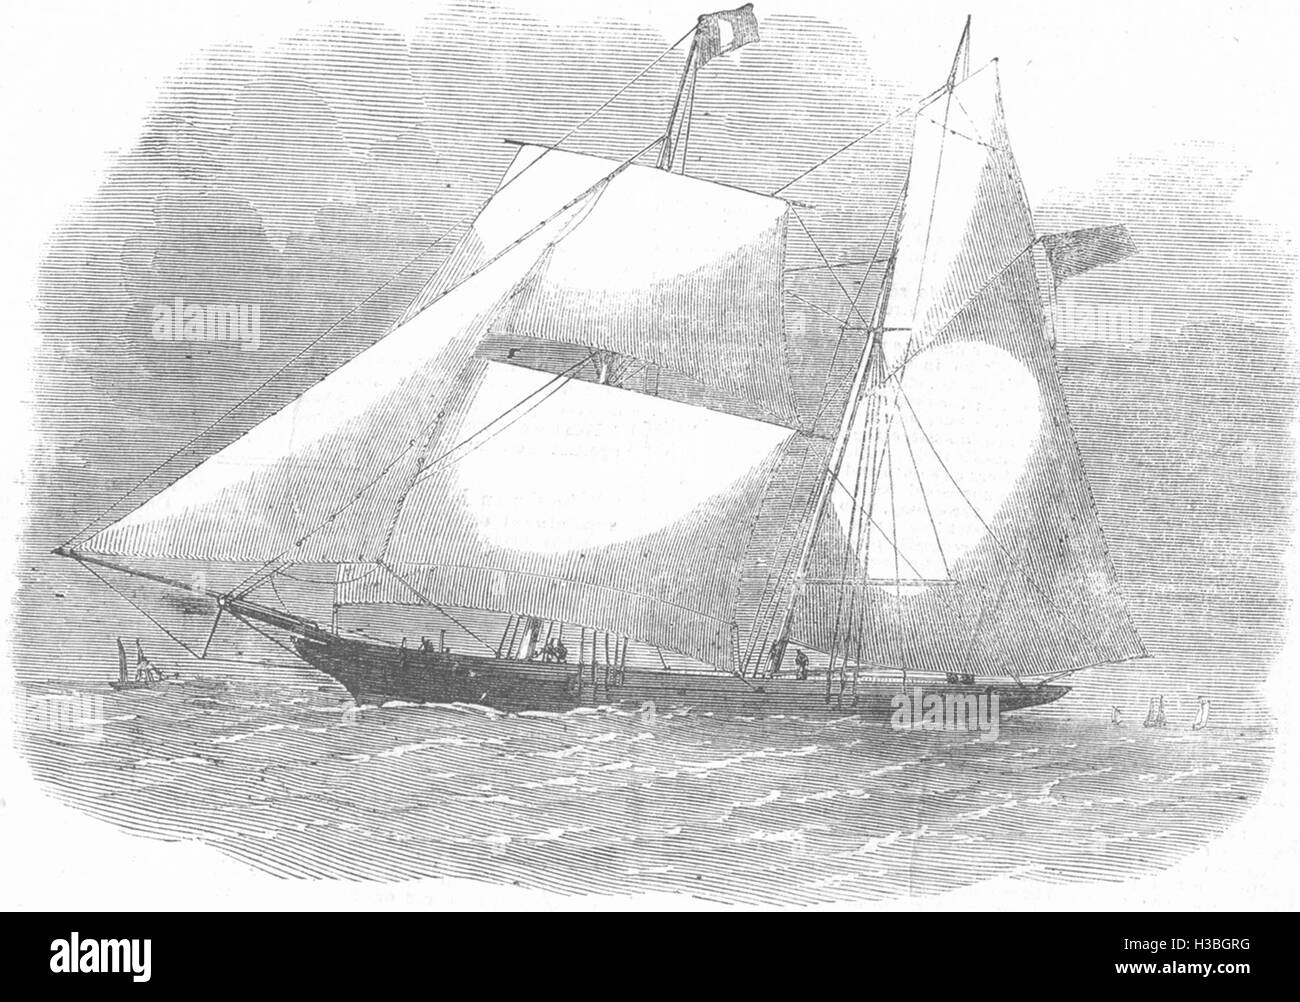 SHIPS Rowlett's brigantine yacht Remarkable 1857. The Illustrated London News - Stock Image